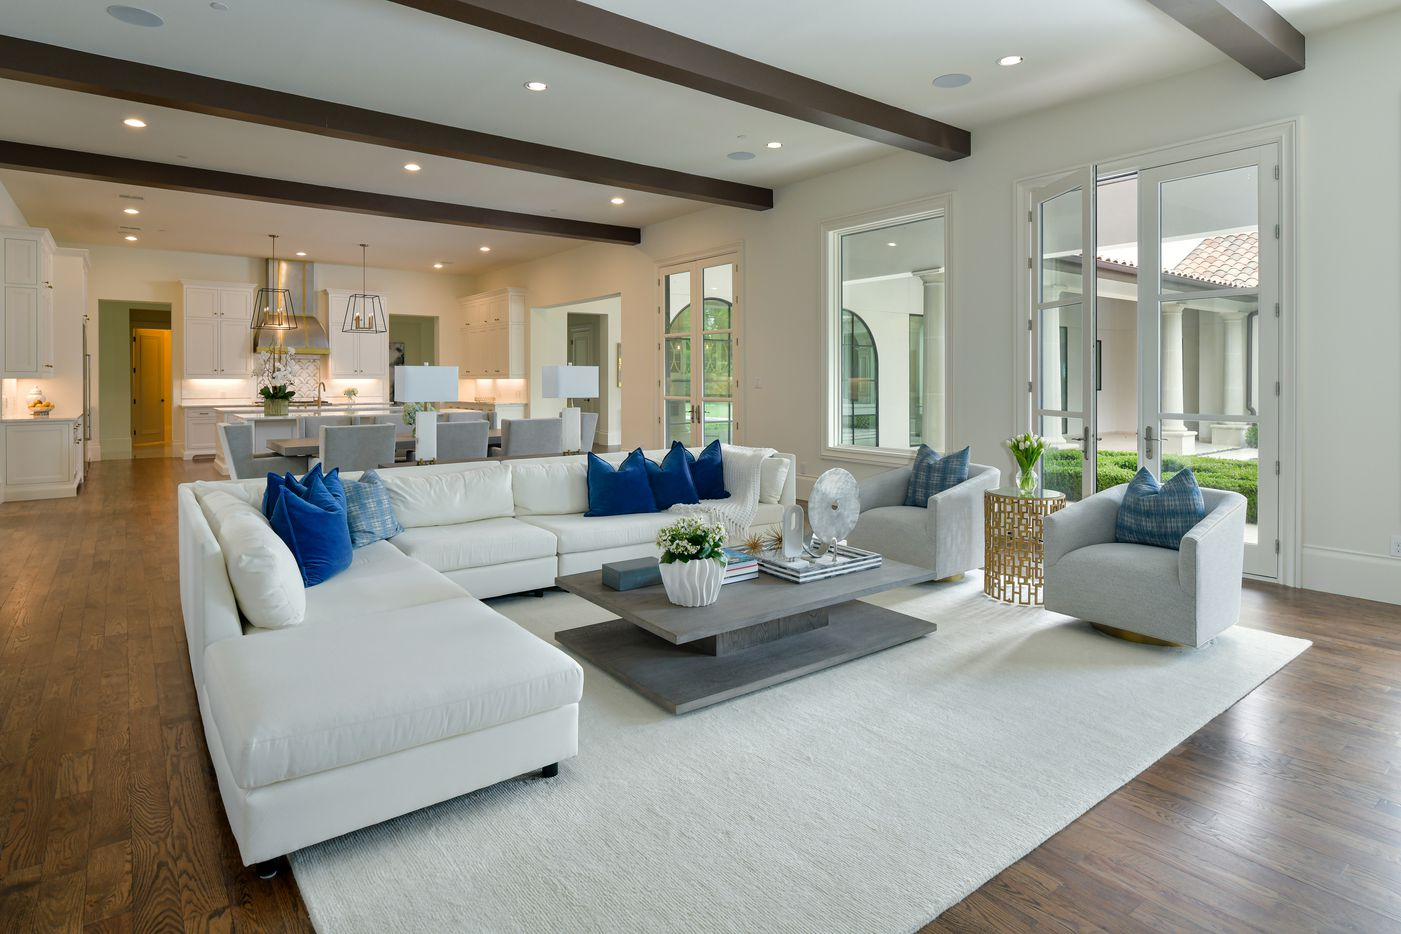 Take a look at the home at 5400 Edlen Drive in Dallas.